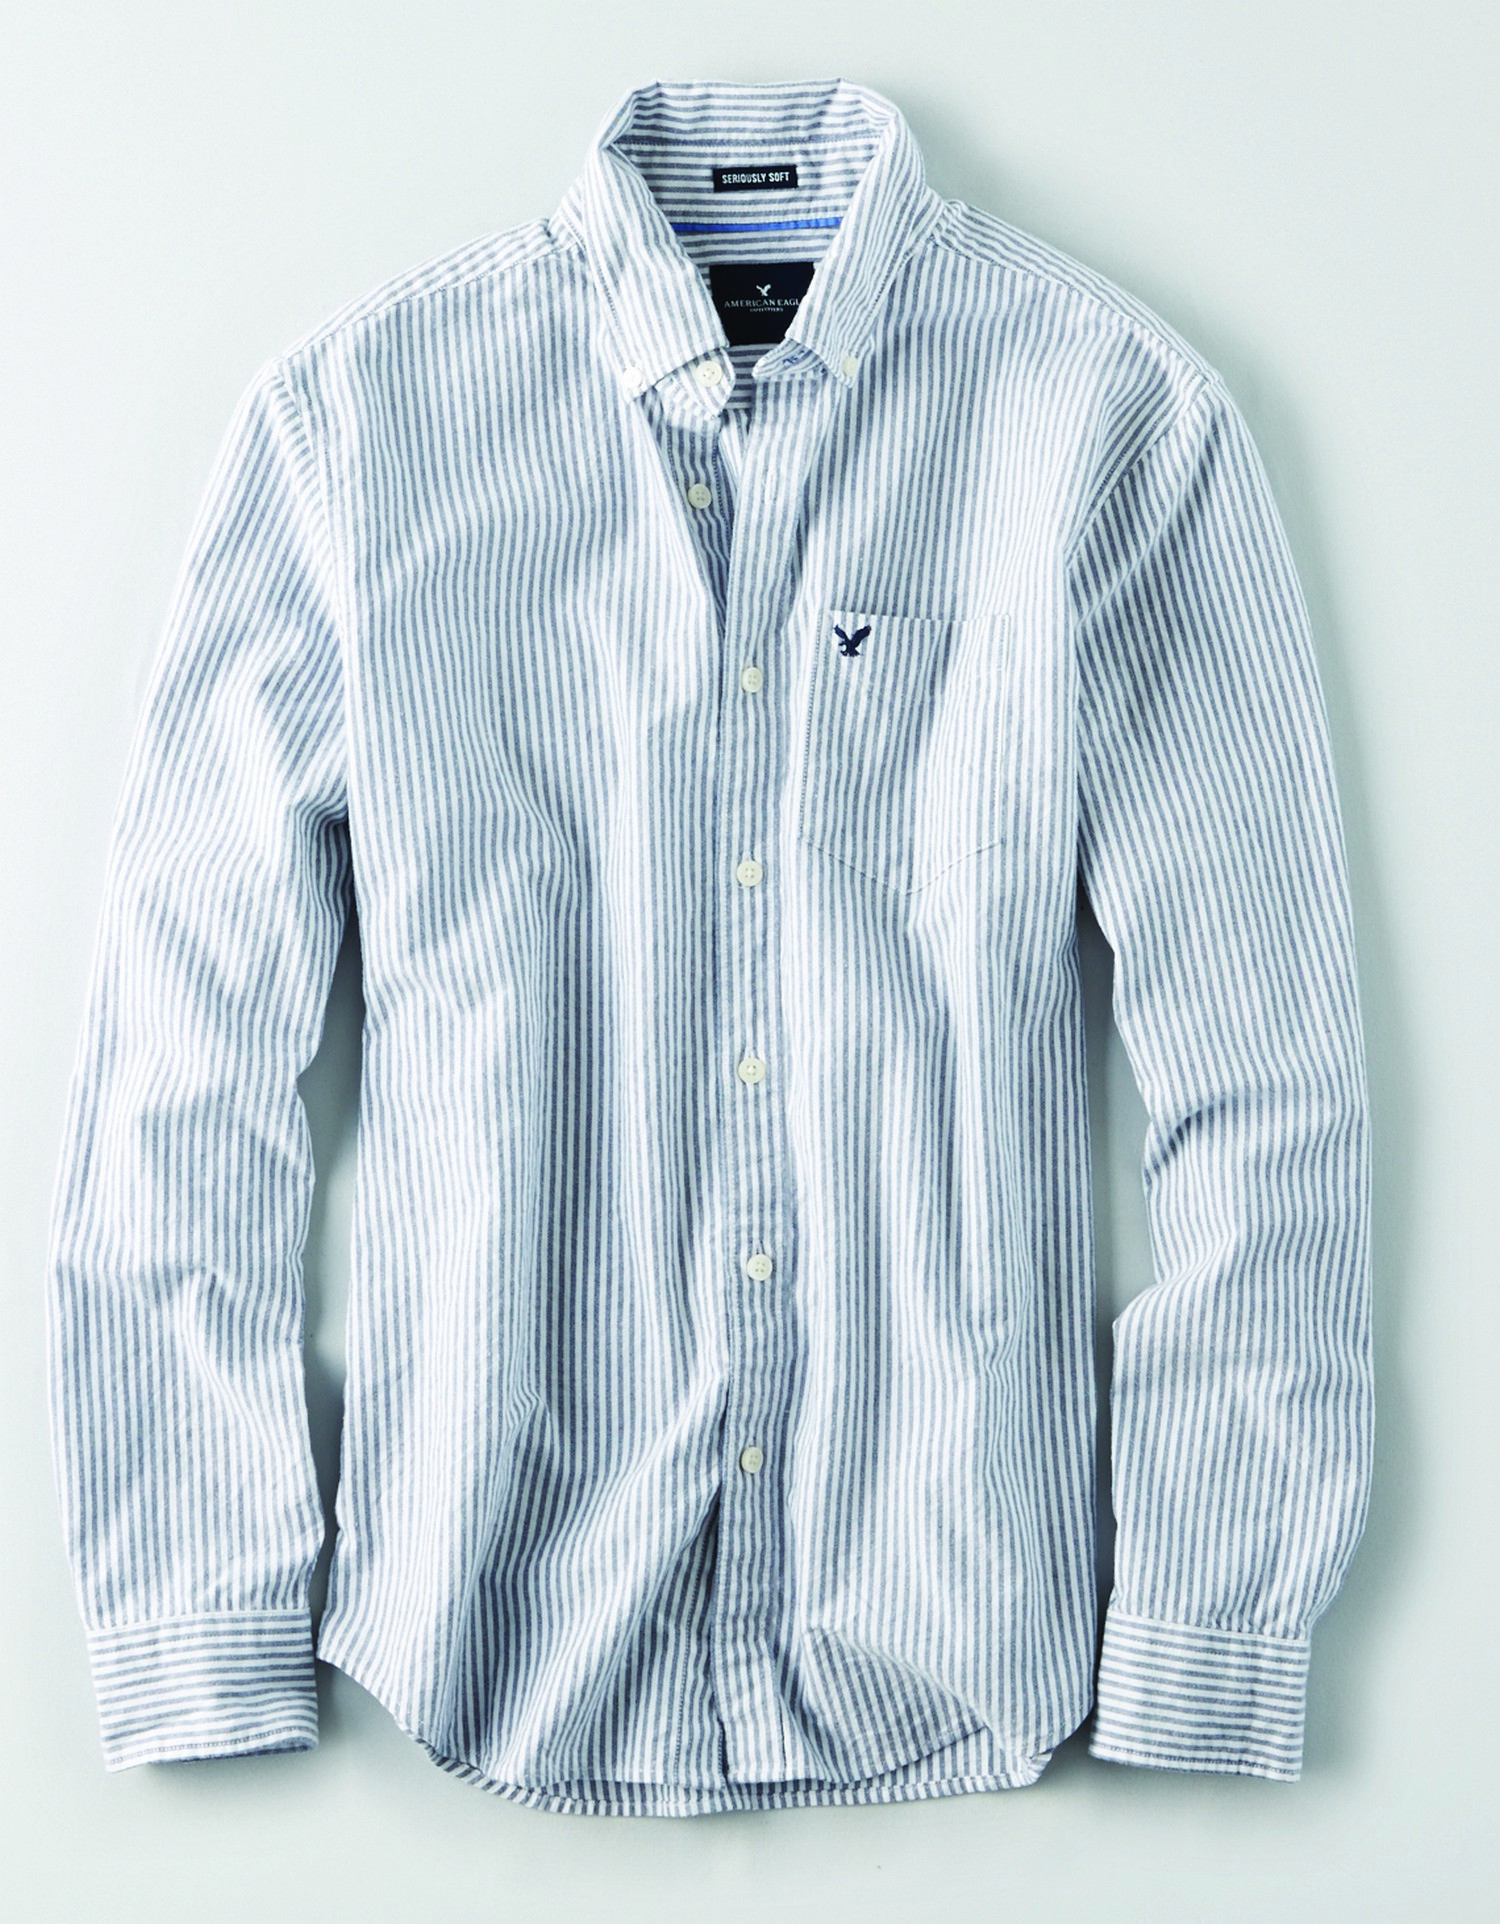 AE - INTL - Apparel - M-SF BENGEL STRIPE BD - Navy and white vertical stripe - left chest pocket w/Navy eagle - button collar JP